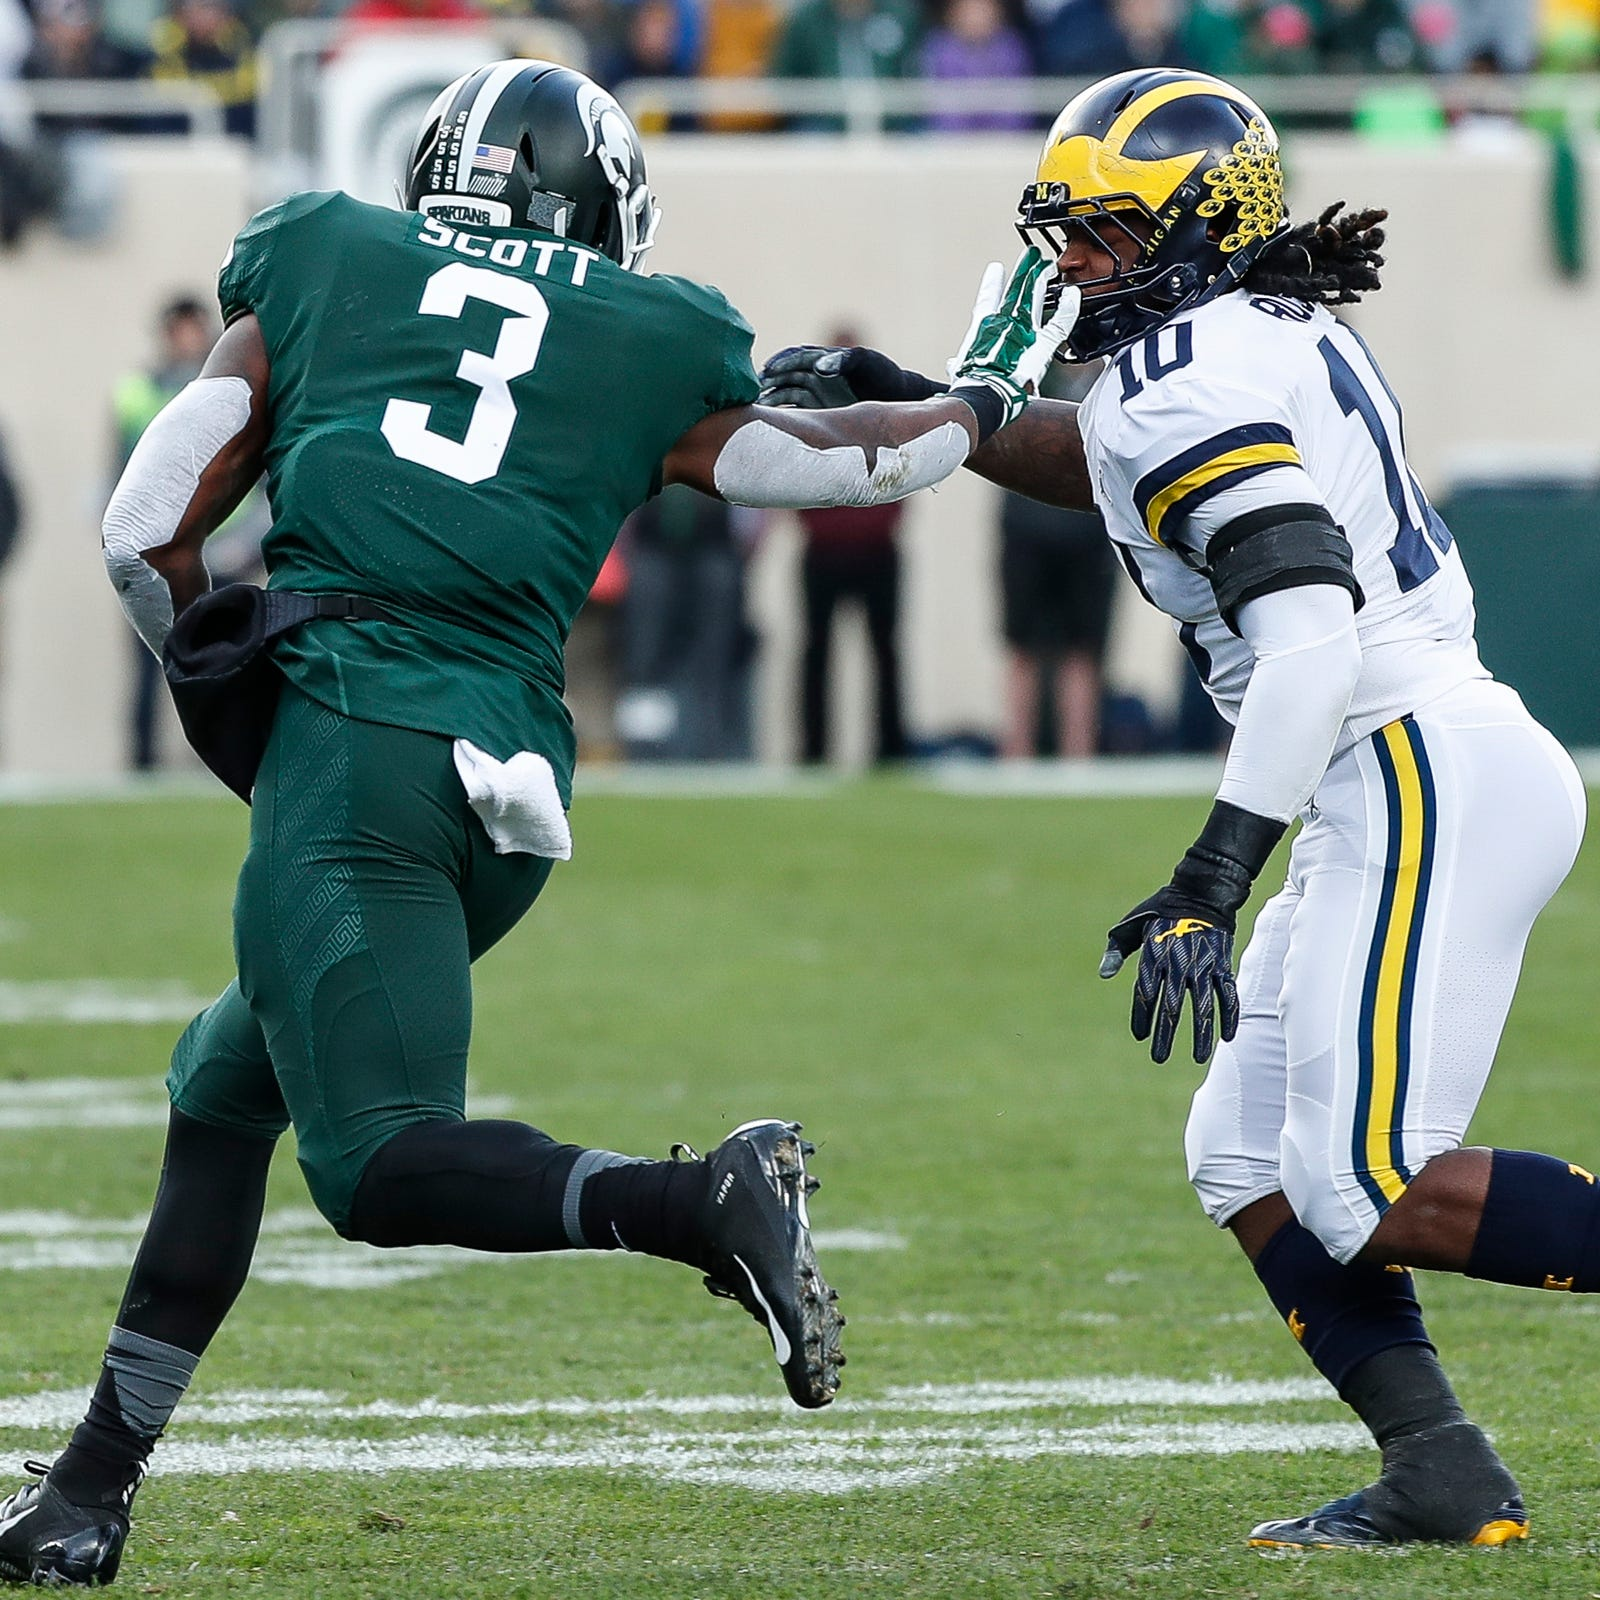 Couch: 3 quick takes on MSU and the Big Ten in the NFL Draft – and 2 players not selected